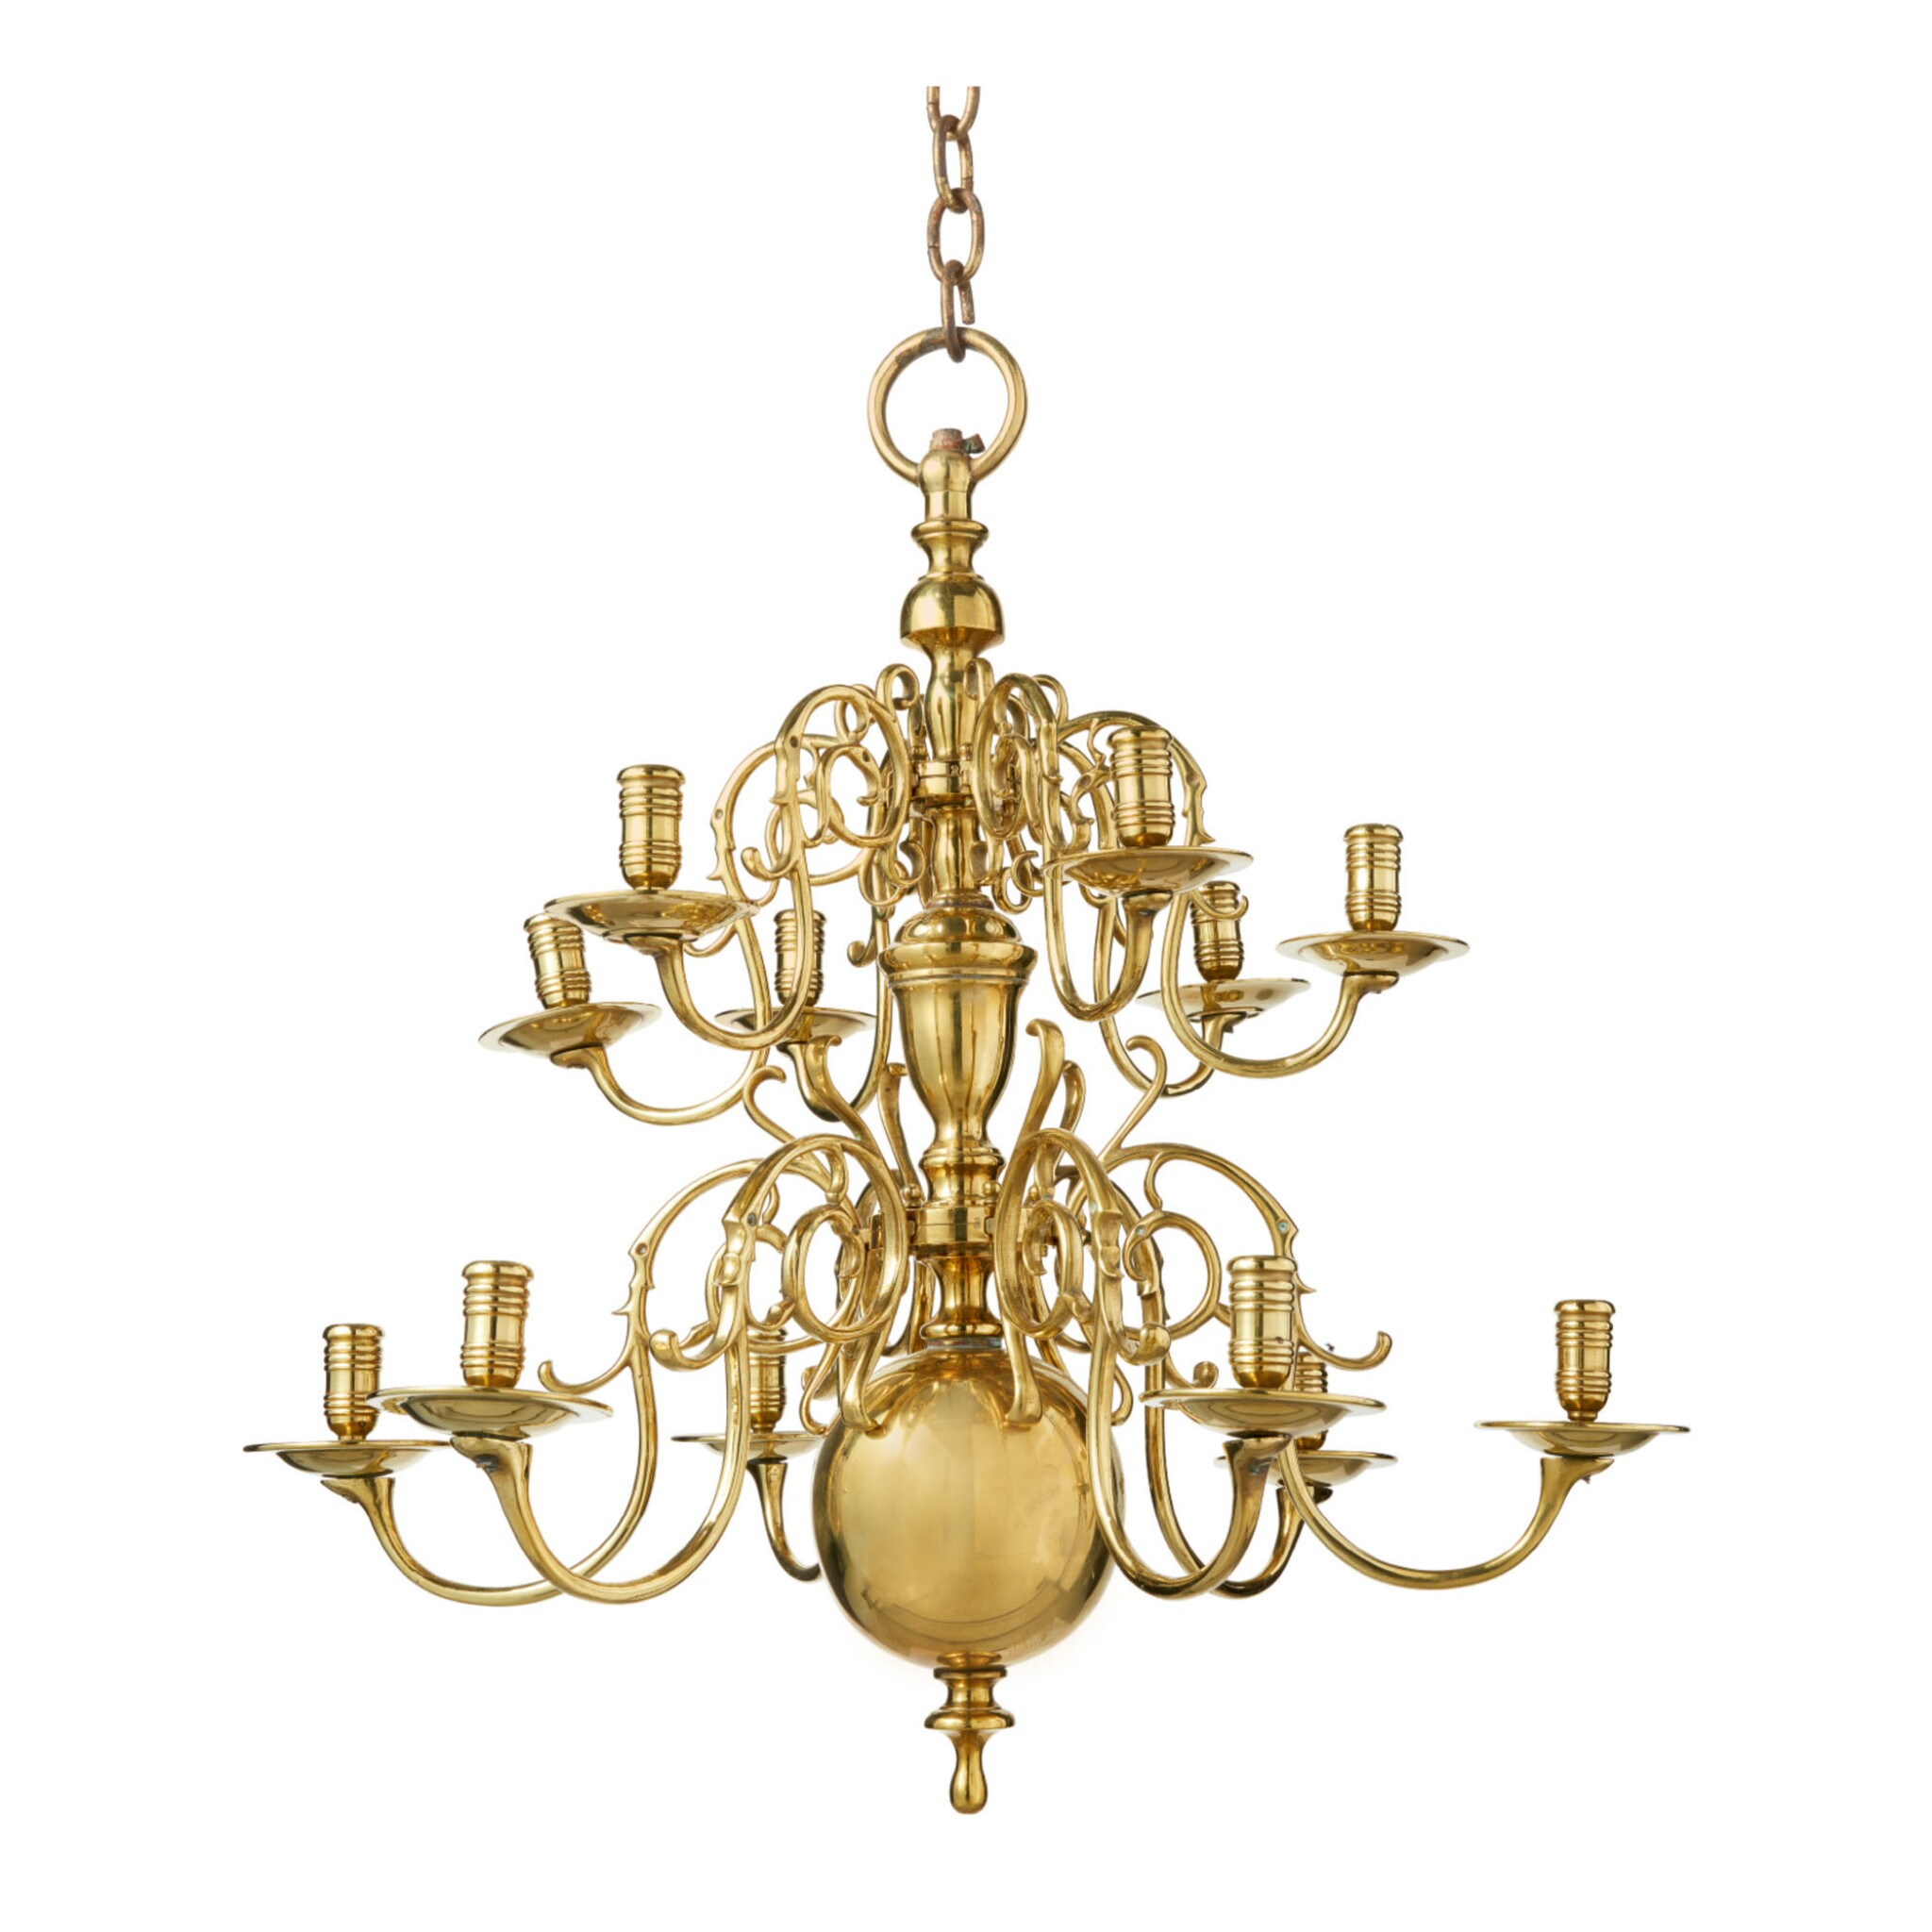 View 1 of Lot 509. A DUTCH BAROQUE BRASS TWELVE-LIGHT CHANDELIER, LATE 17TH CENTURY AND LATER.